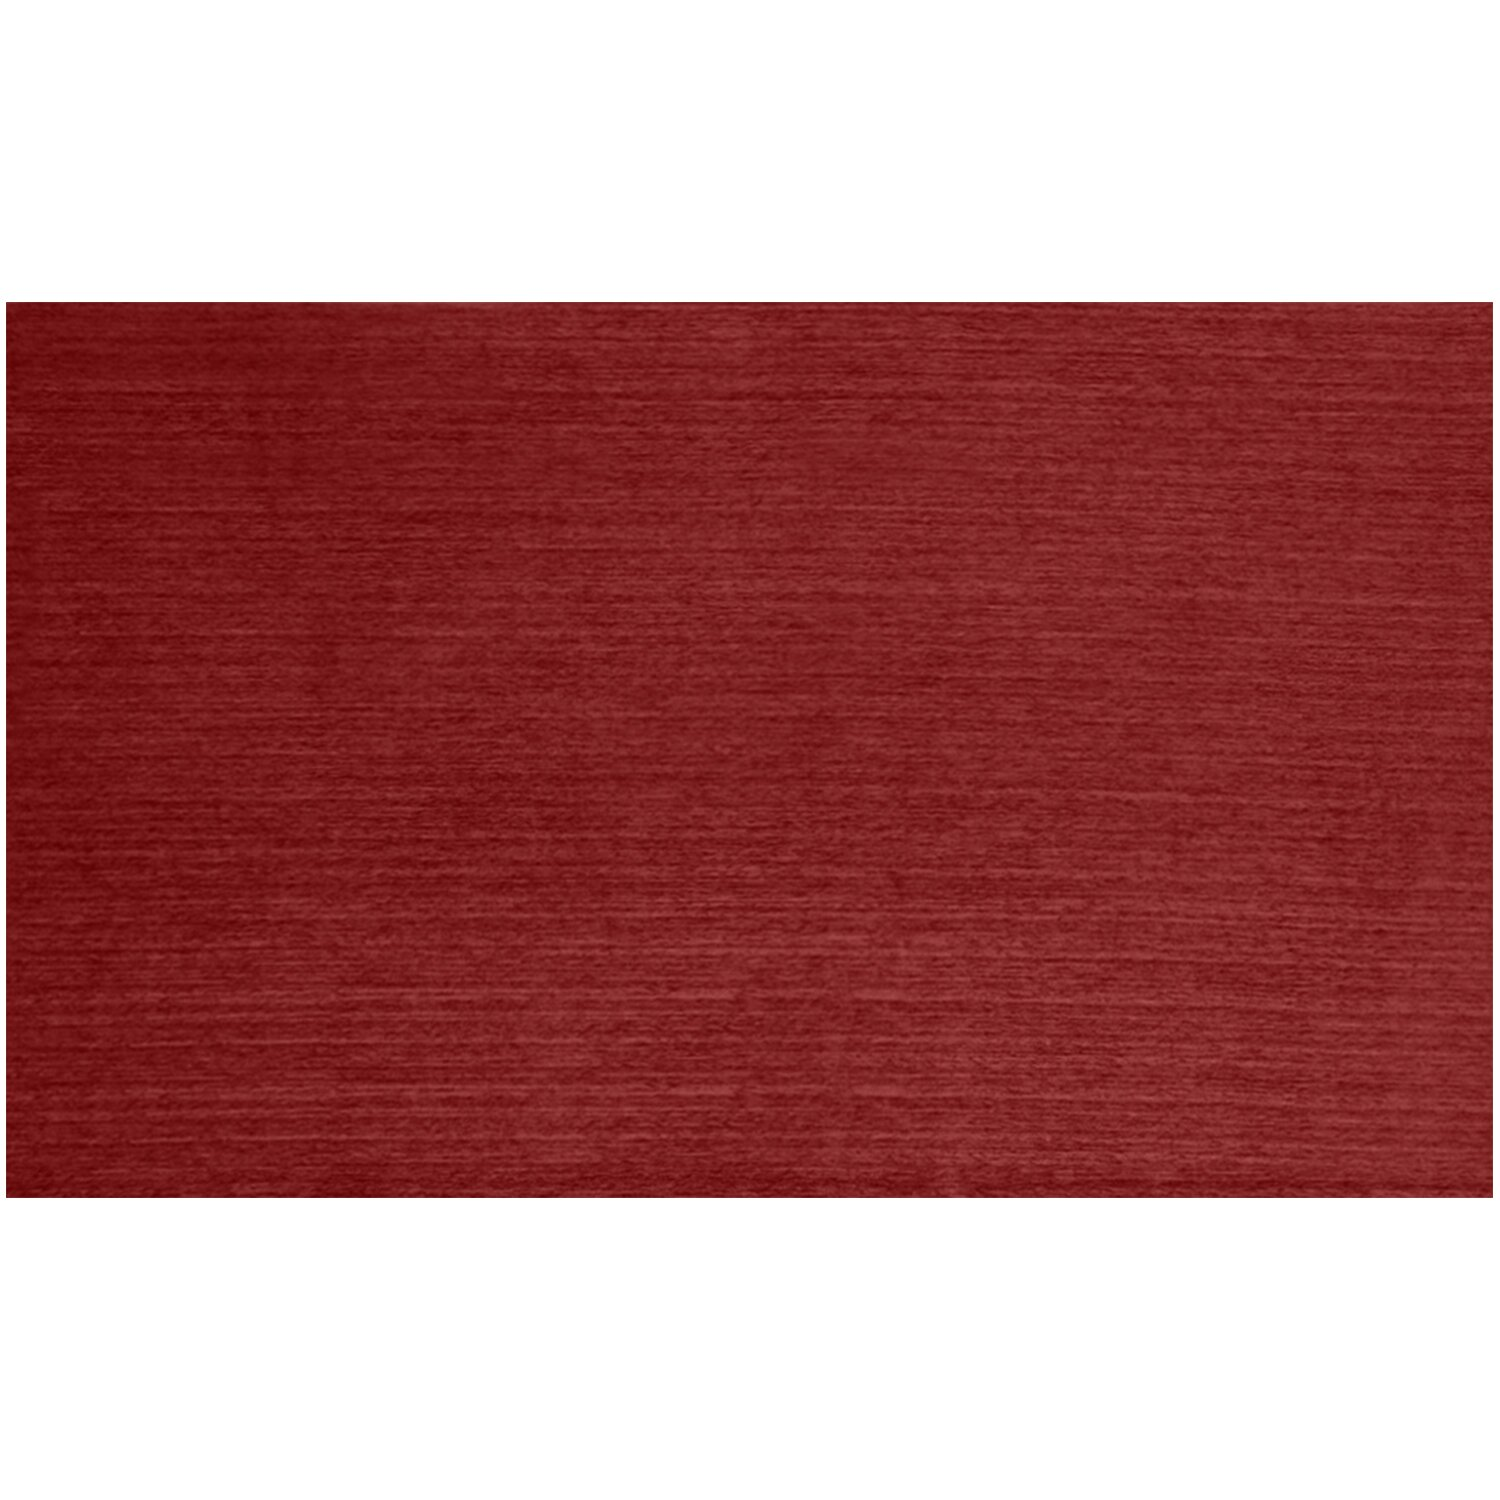 Ruggable hand woven red indoor outdoor area rug reviews for Woven vinyl outdoor rugs